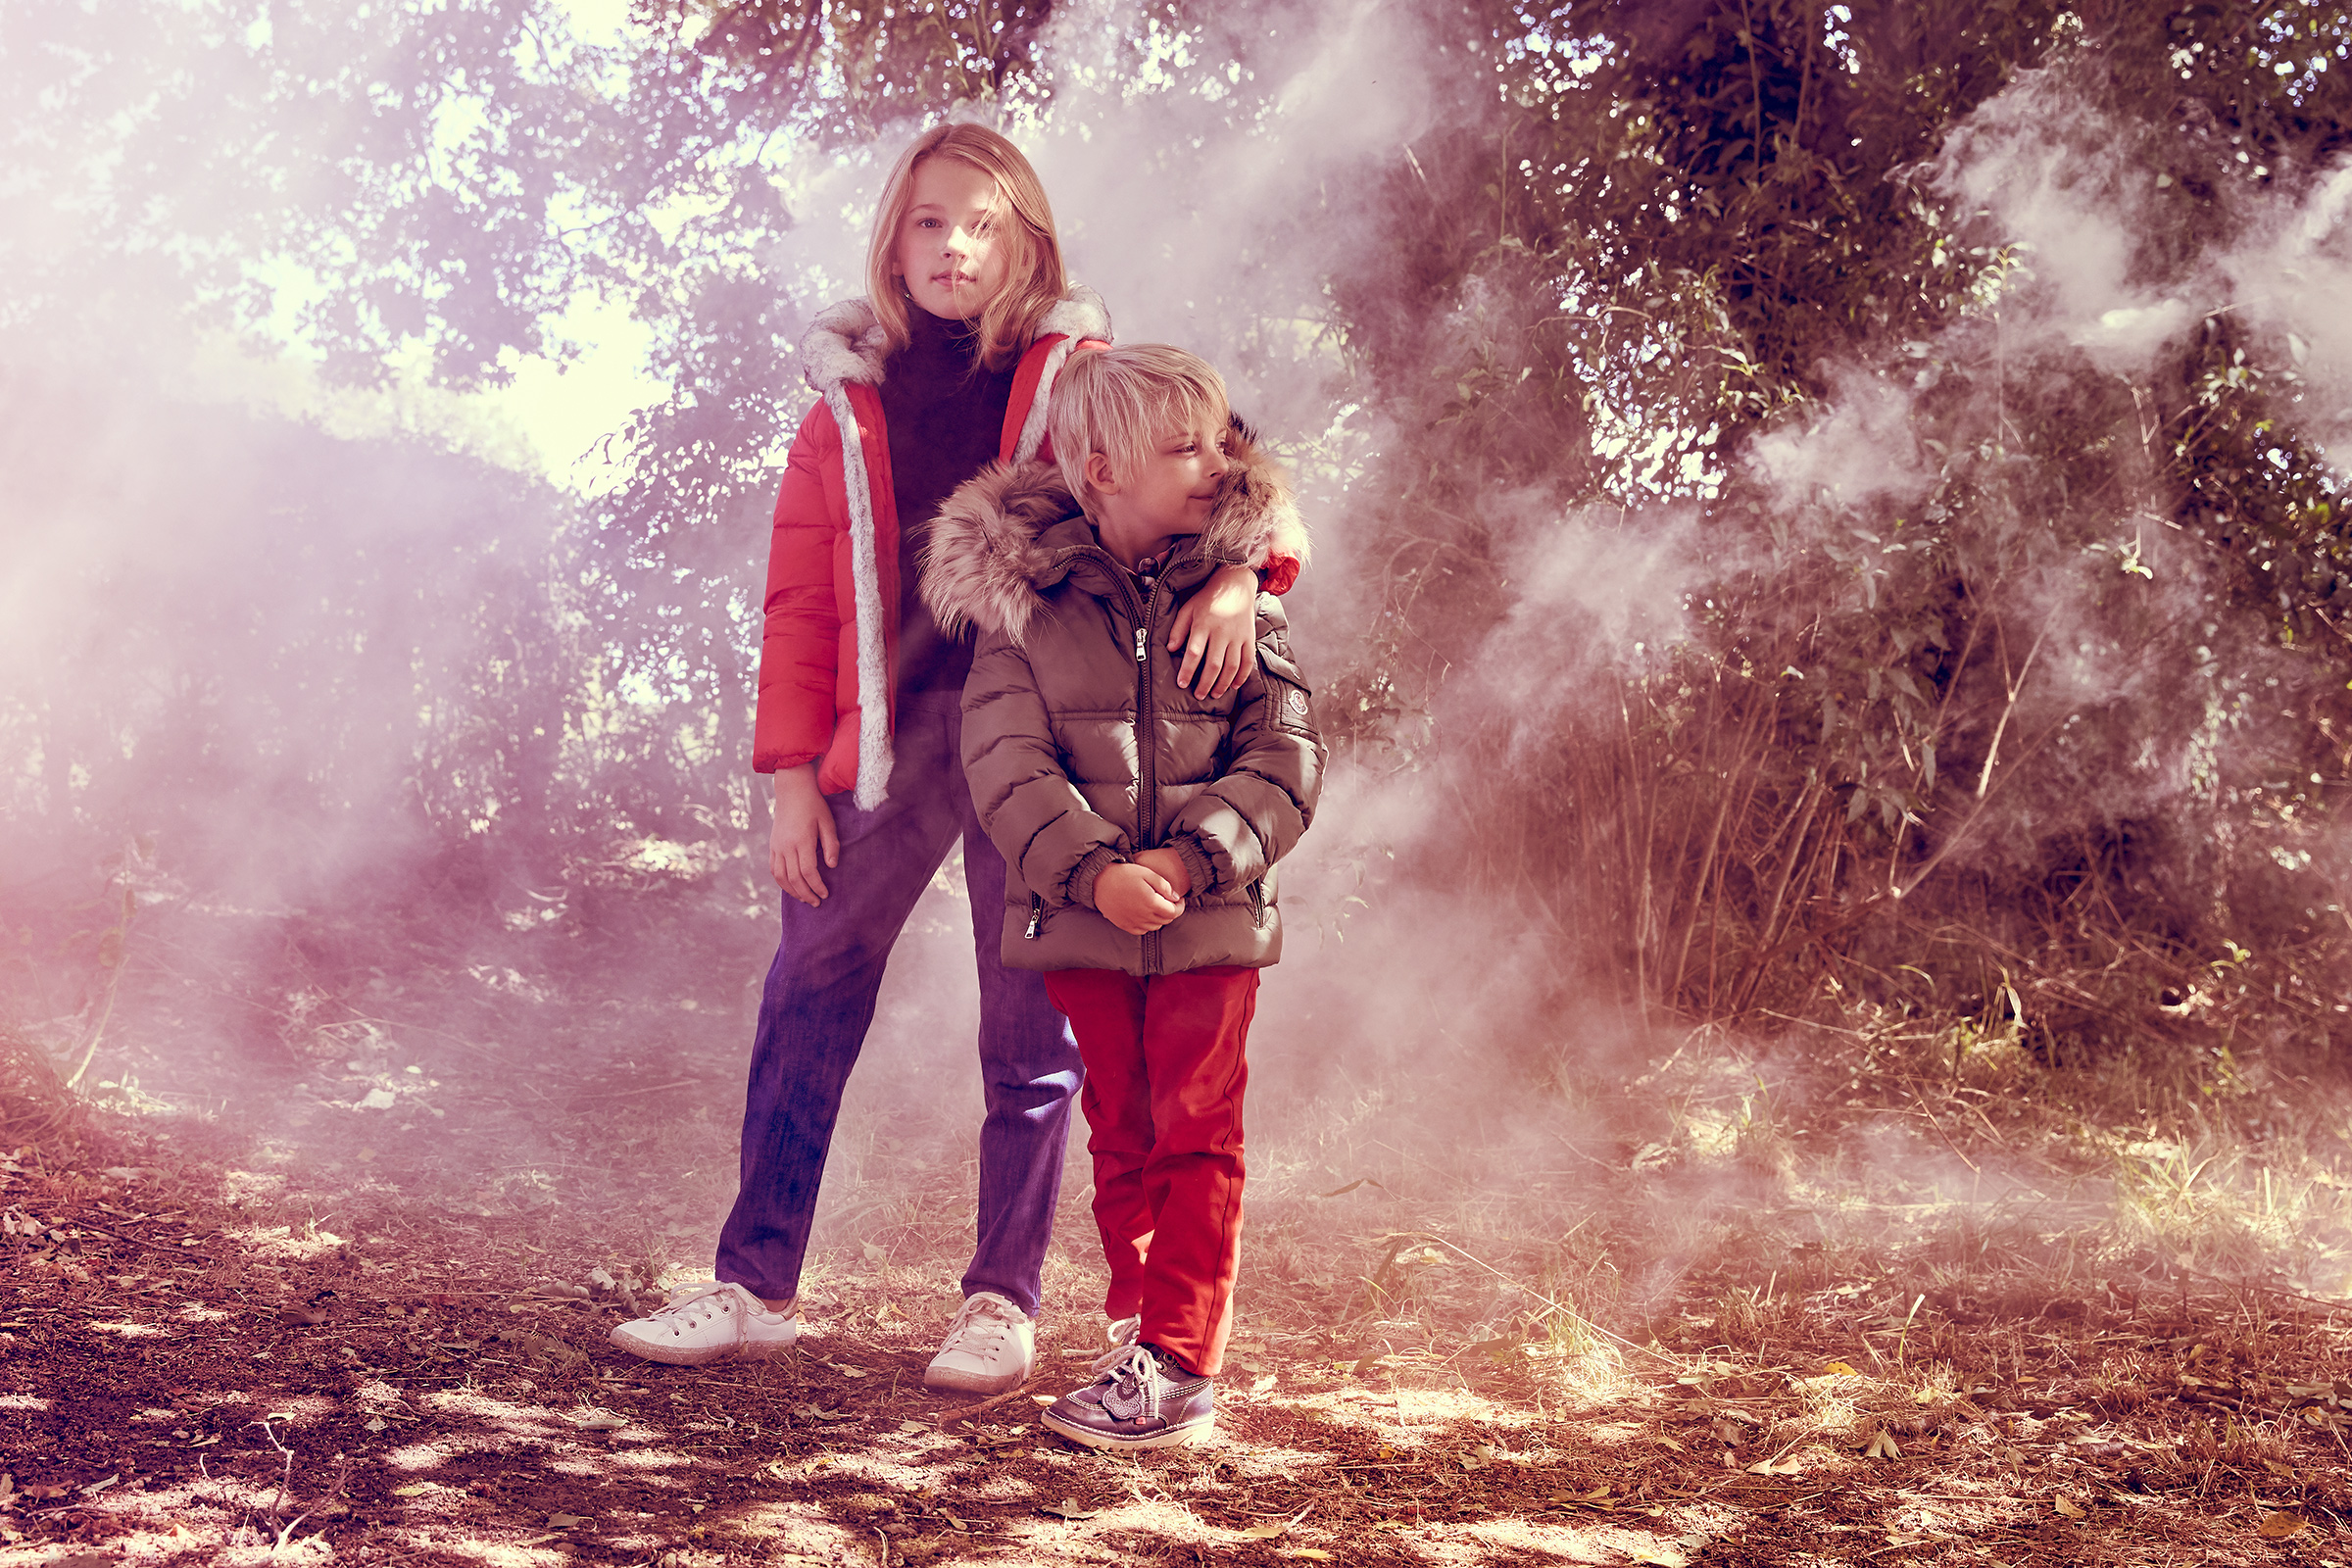 Boy and girl in magic woodland fashion story